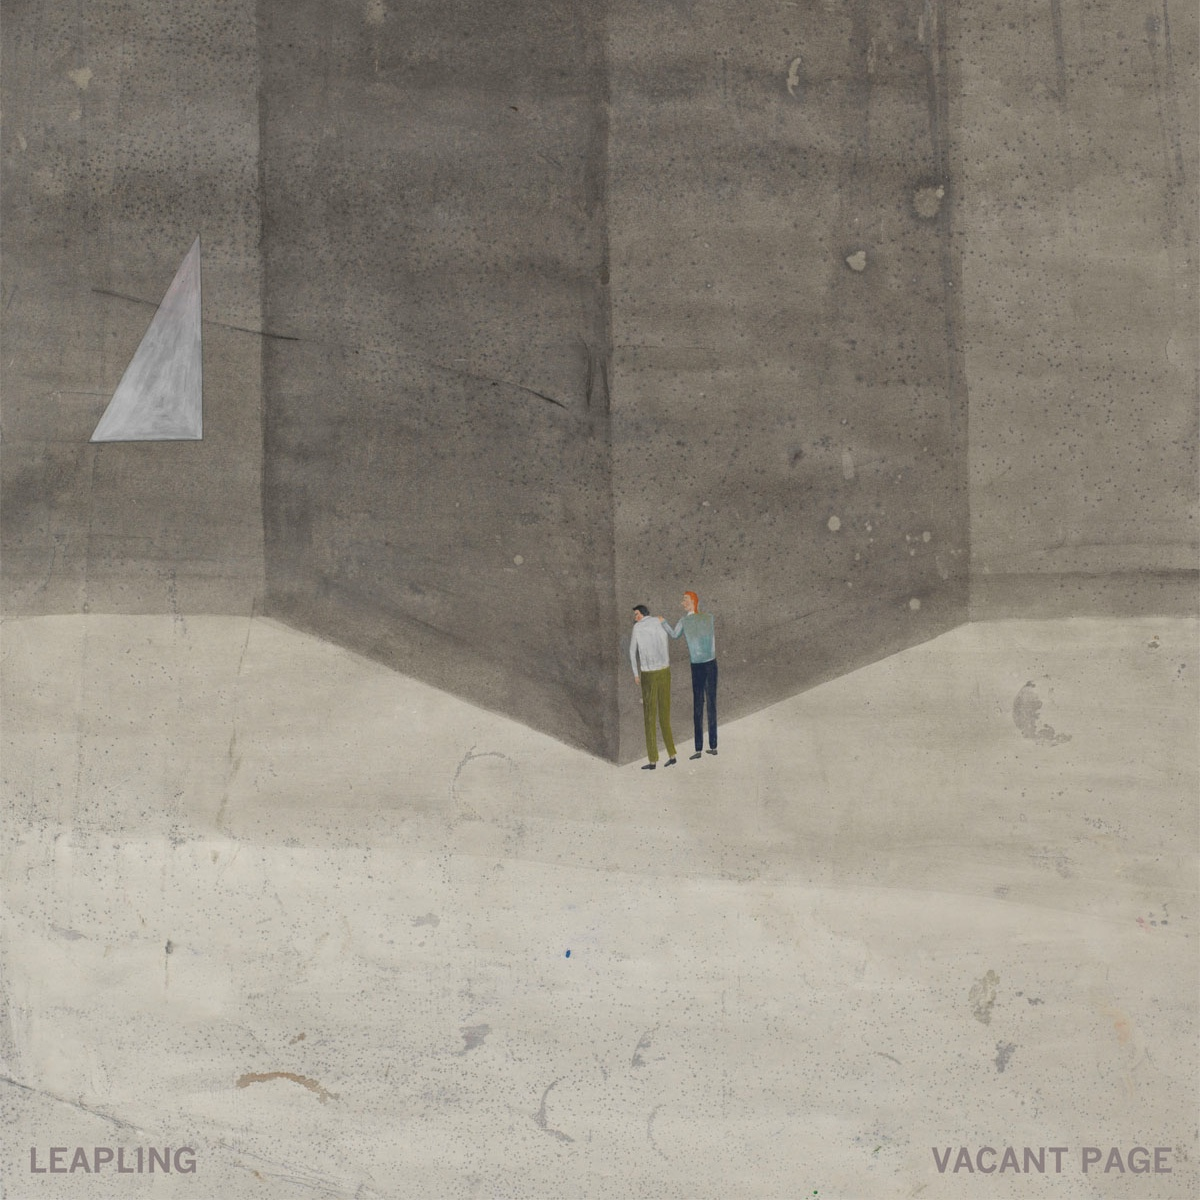 """28. LEAPLING 